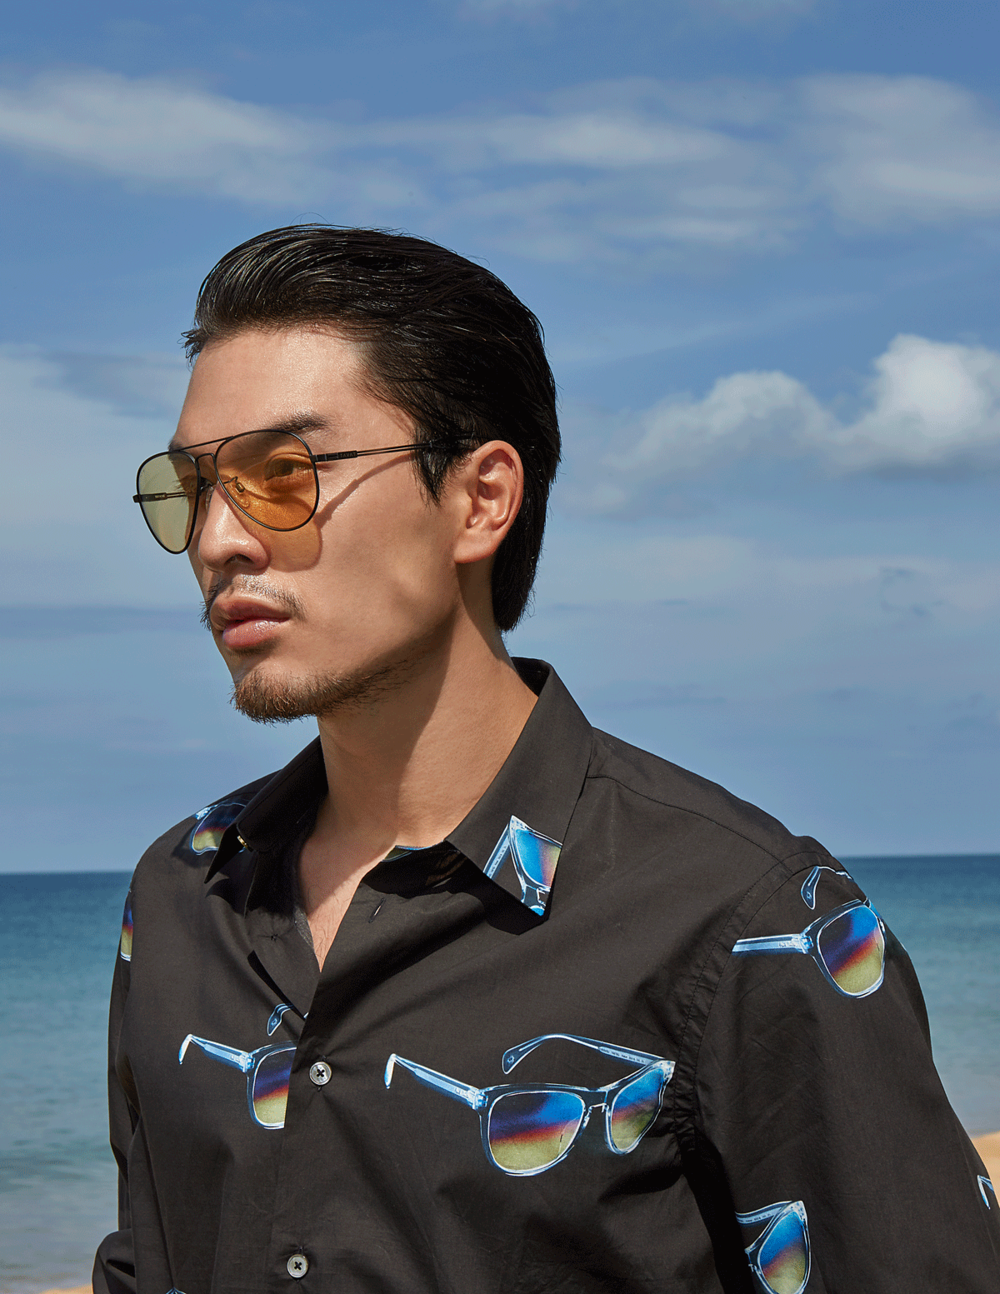 clothes : Paul Smith / sunglasses : TAVAT